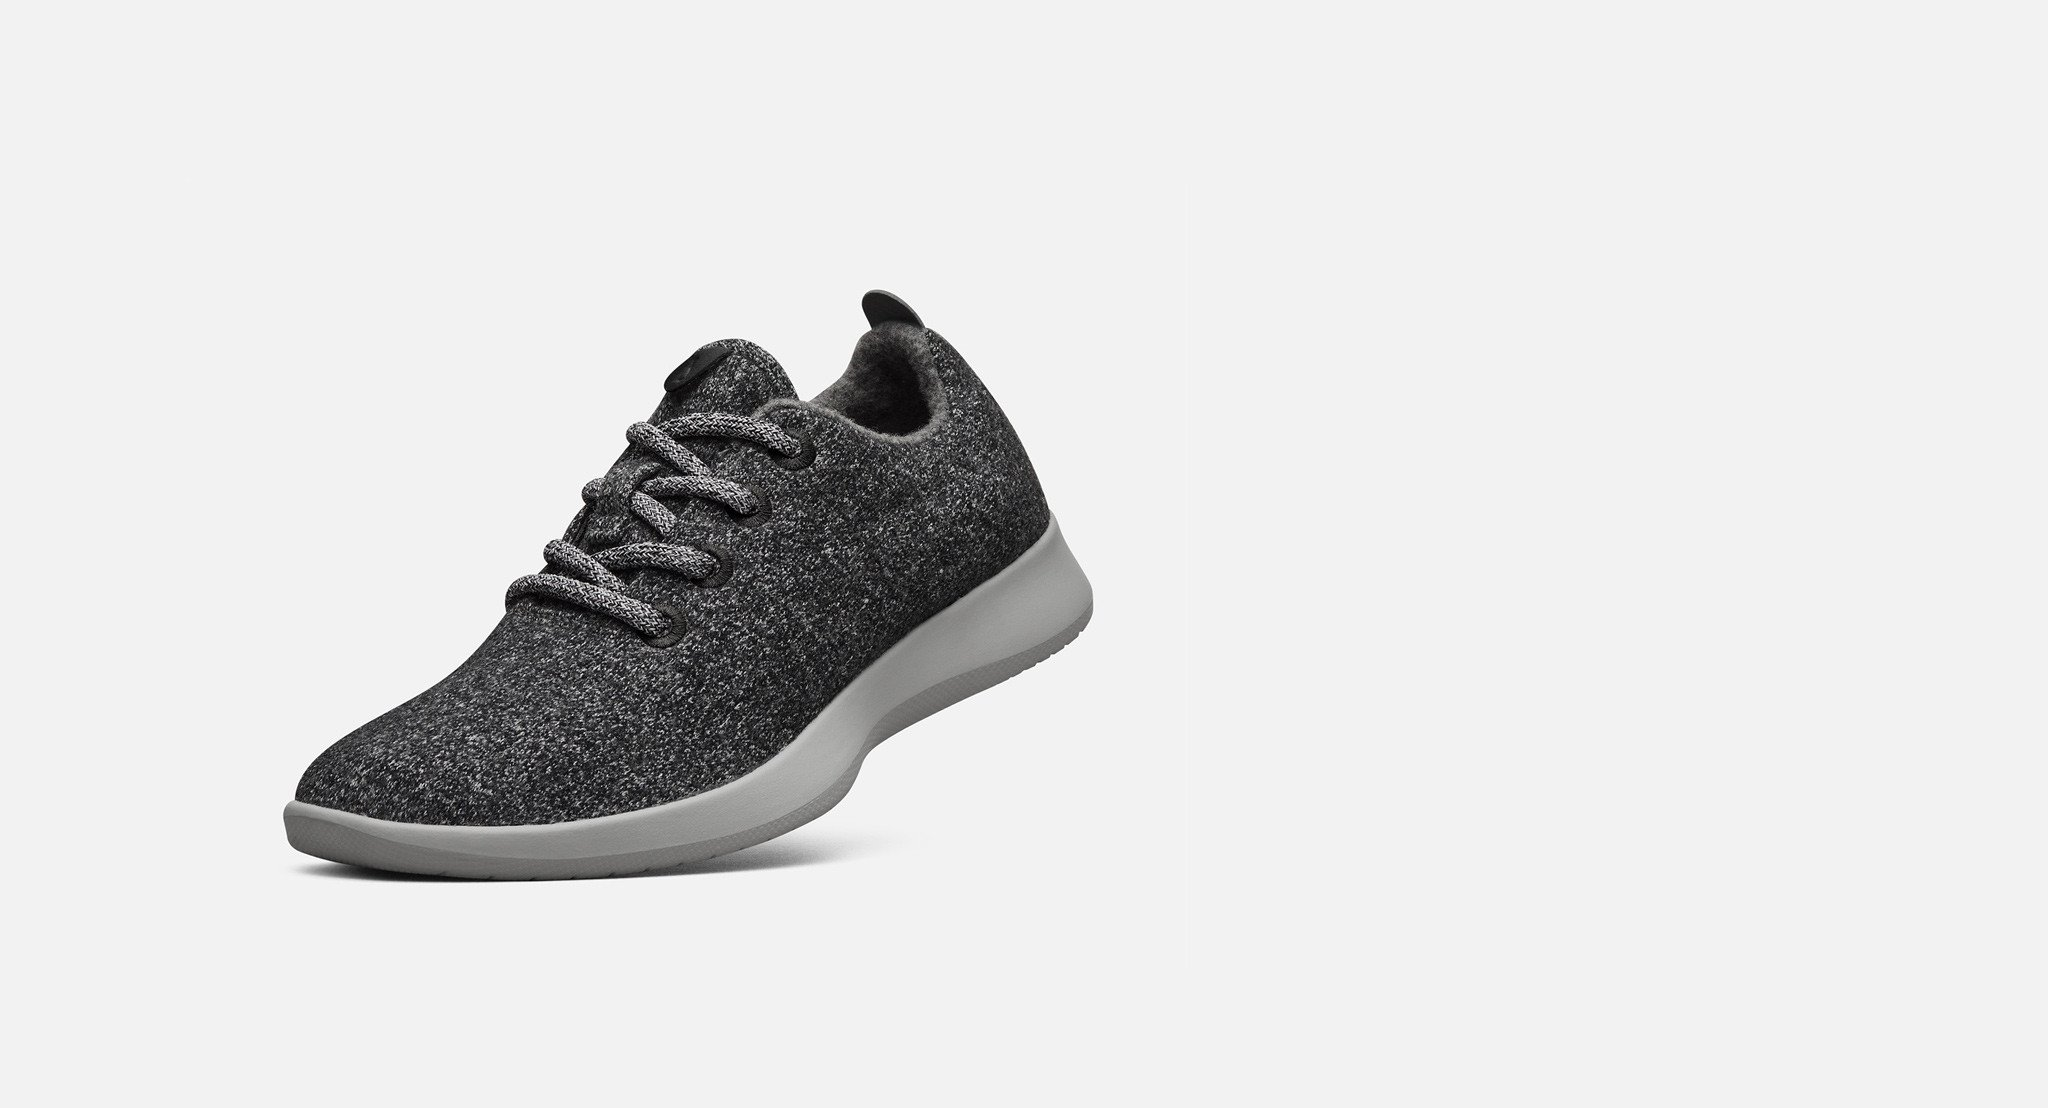 feb079342490 Allbirds charcoal gray women s runners ...